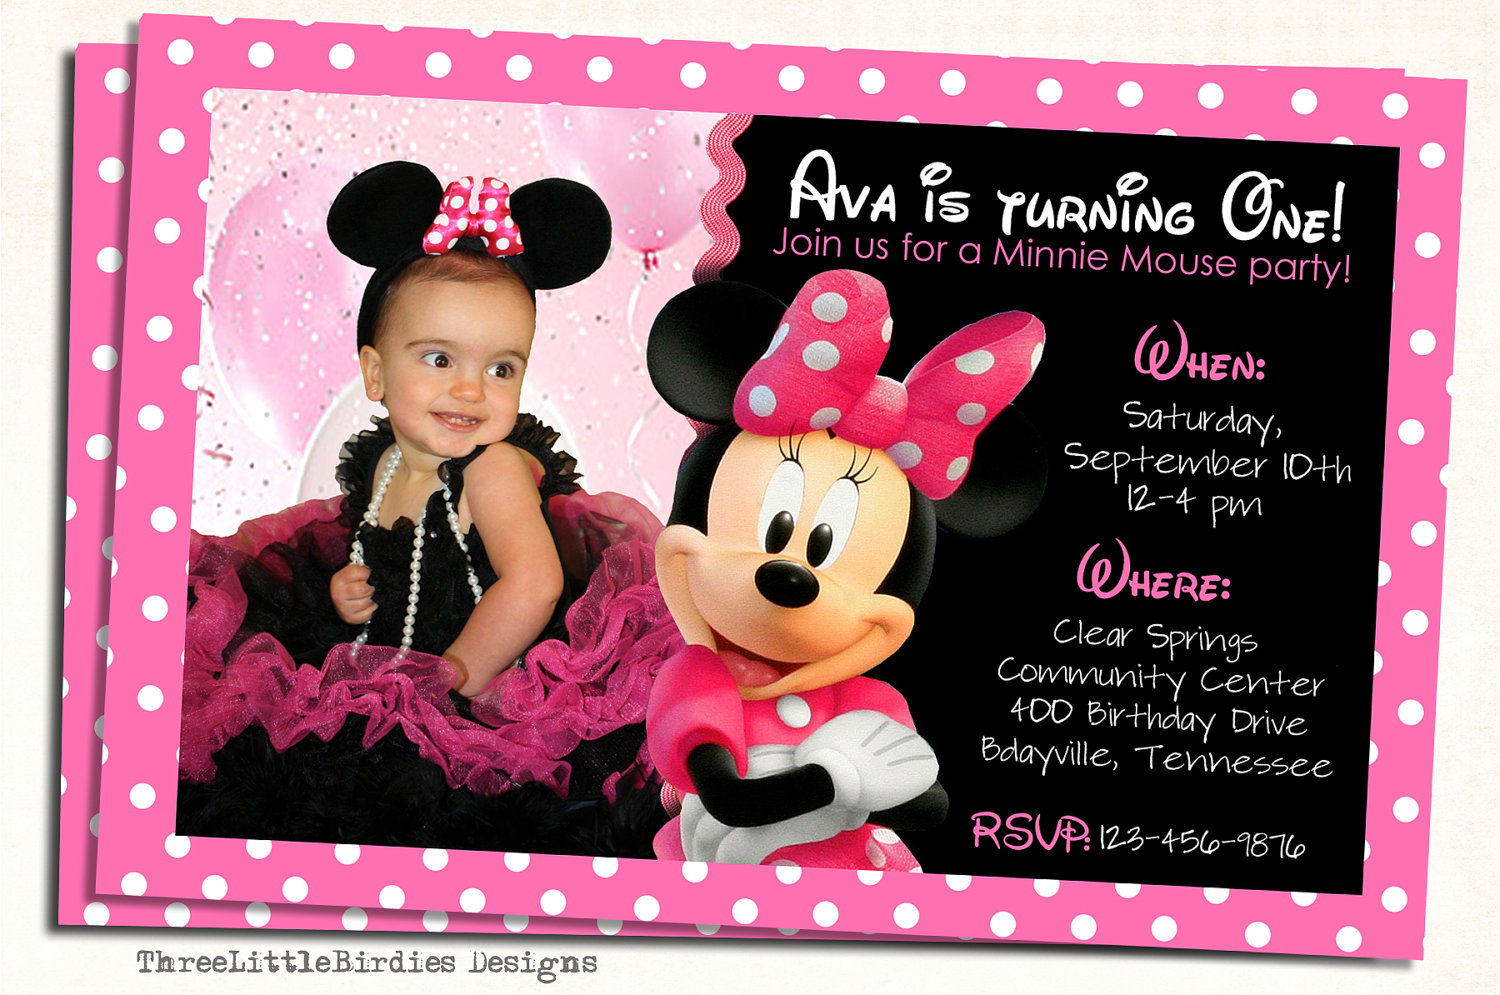 birthday invitation design ; minnie-mouse-photo-birthday-invitations-and-get-inspiration-to-create-the-Birthday-invitation-design-of-your-dreams-1